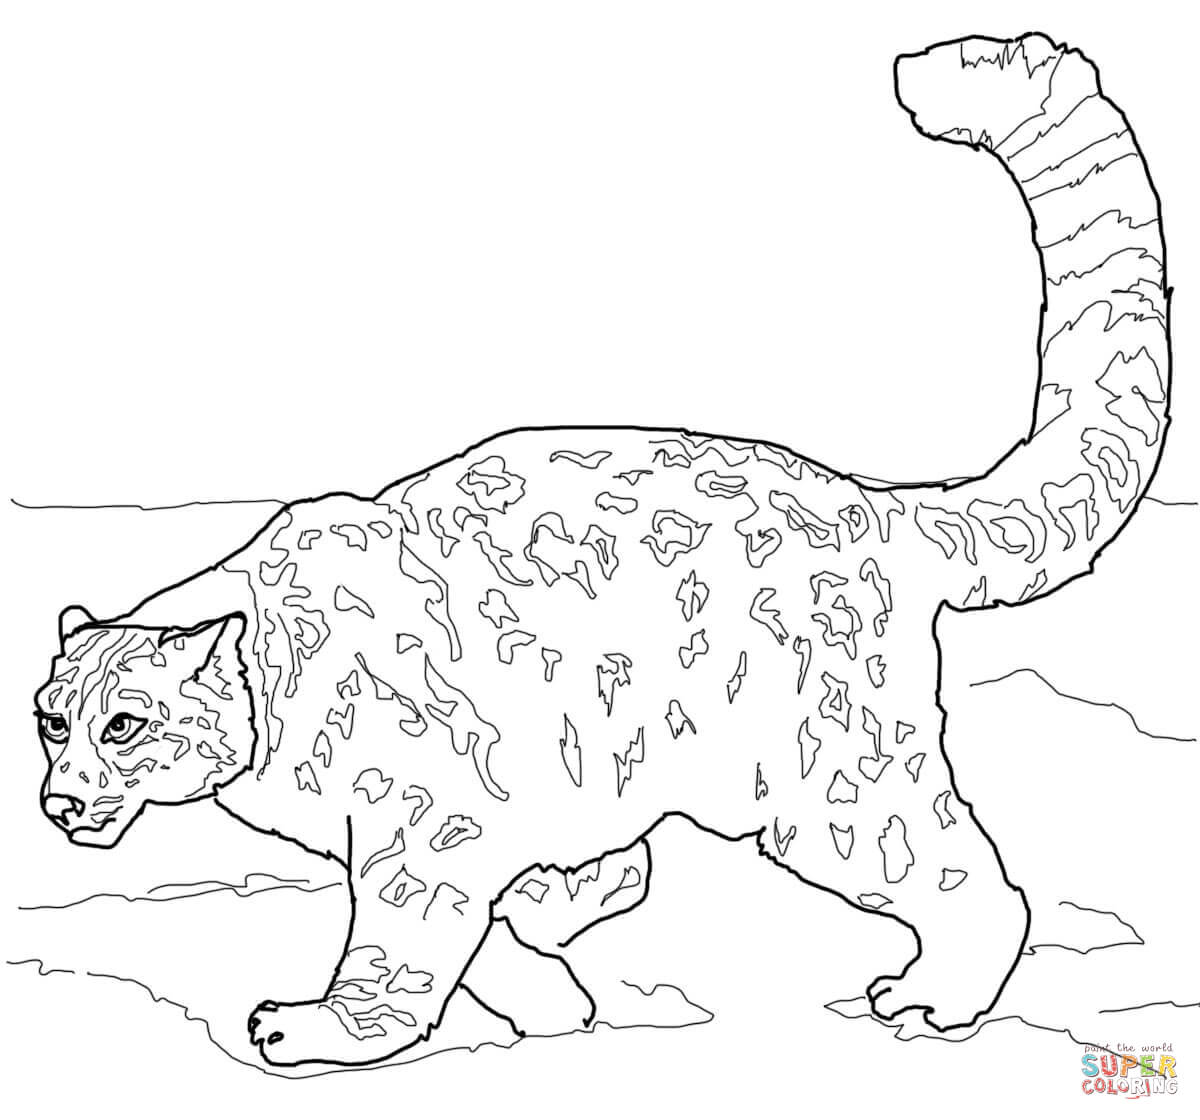 Leopard coloring #19, Download drawings